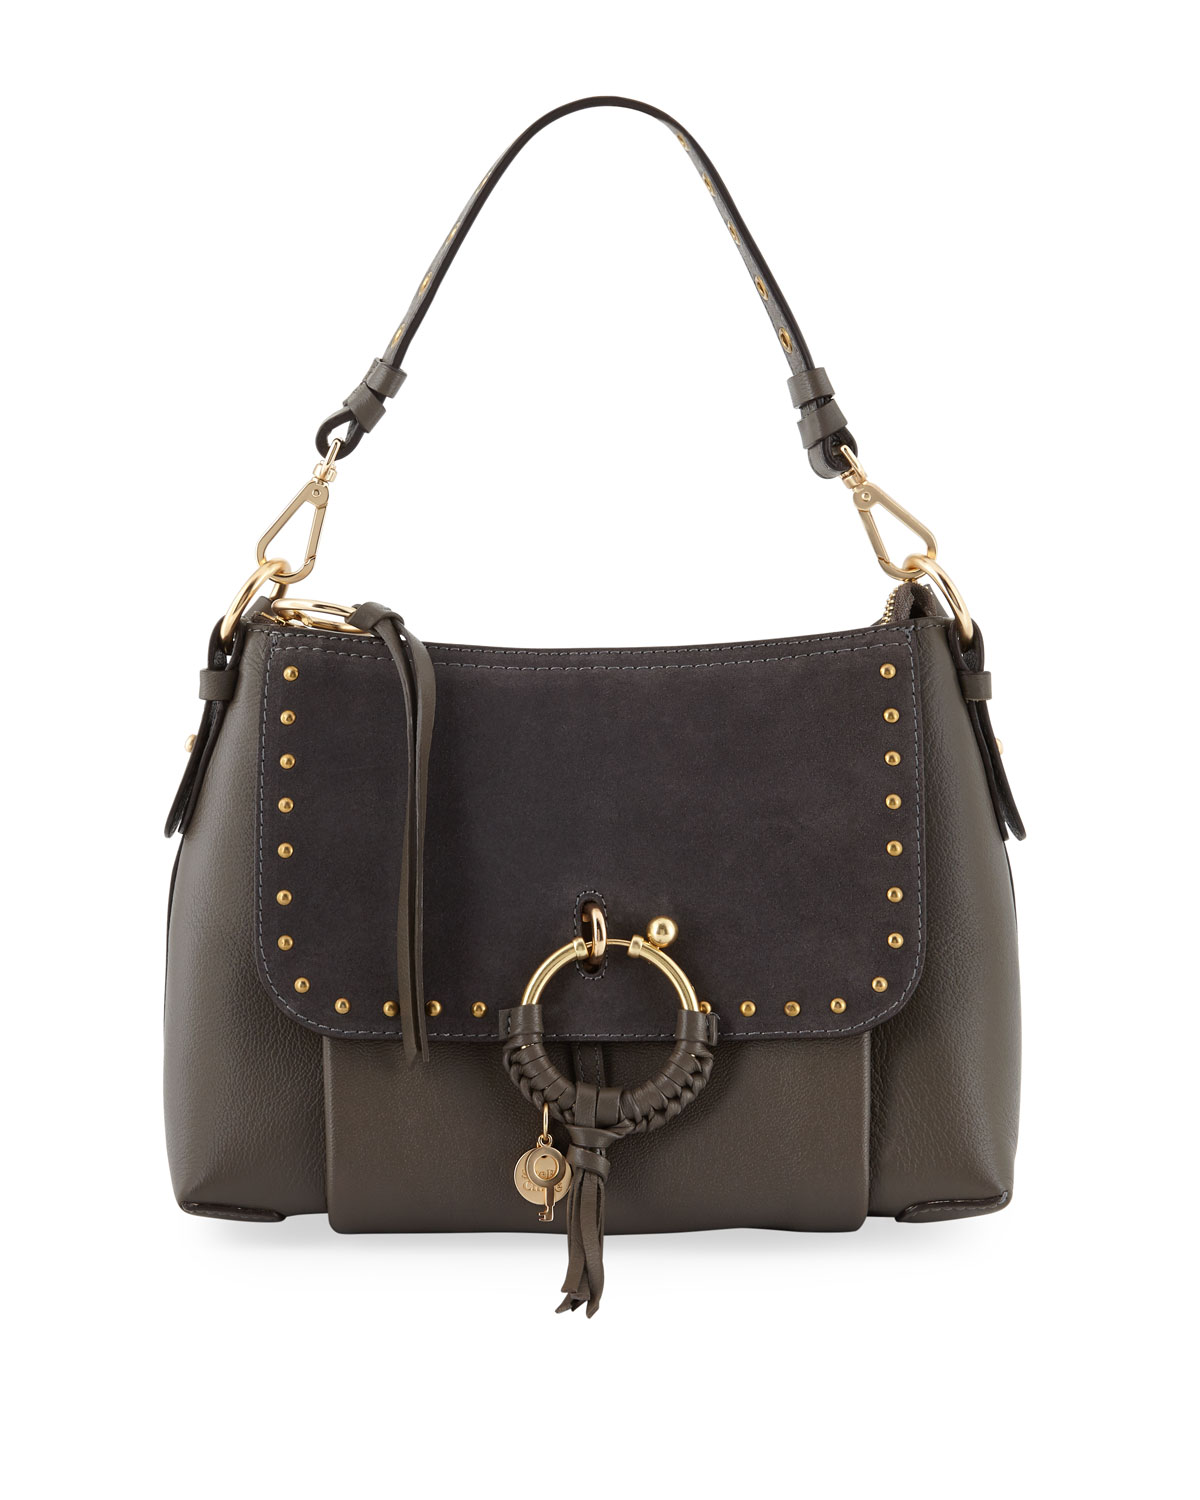 9731d96b3fea See by Chloe Hana Small Studded Leather   Suede Crossbody Bag ...